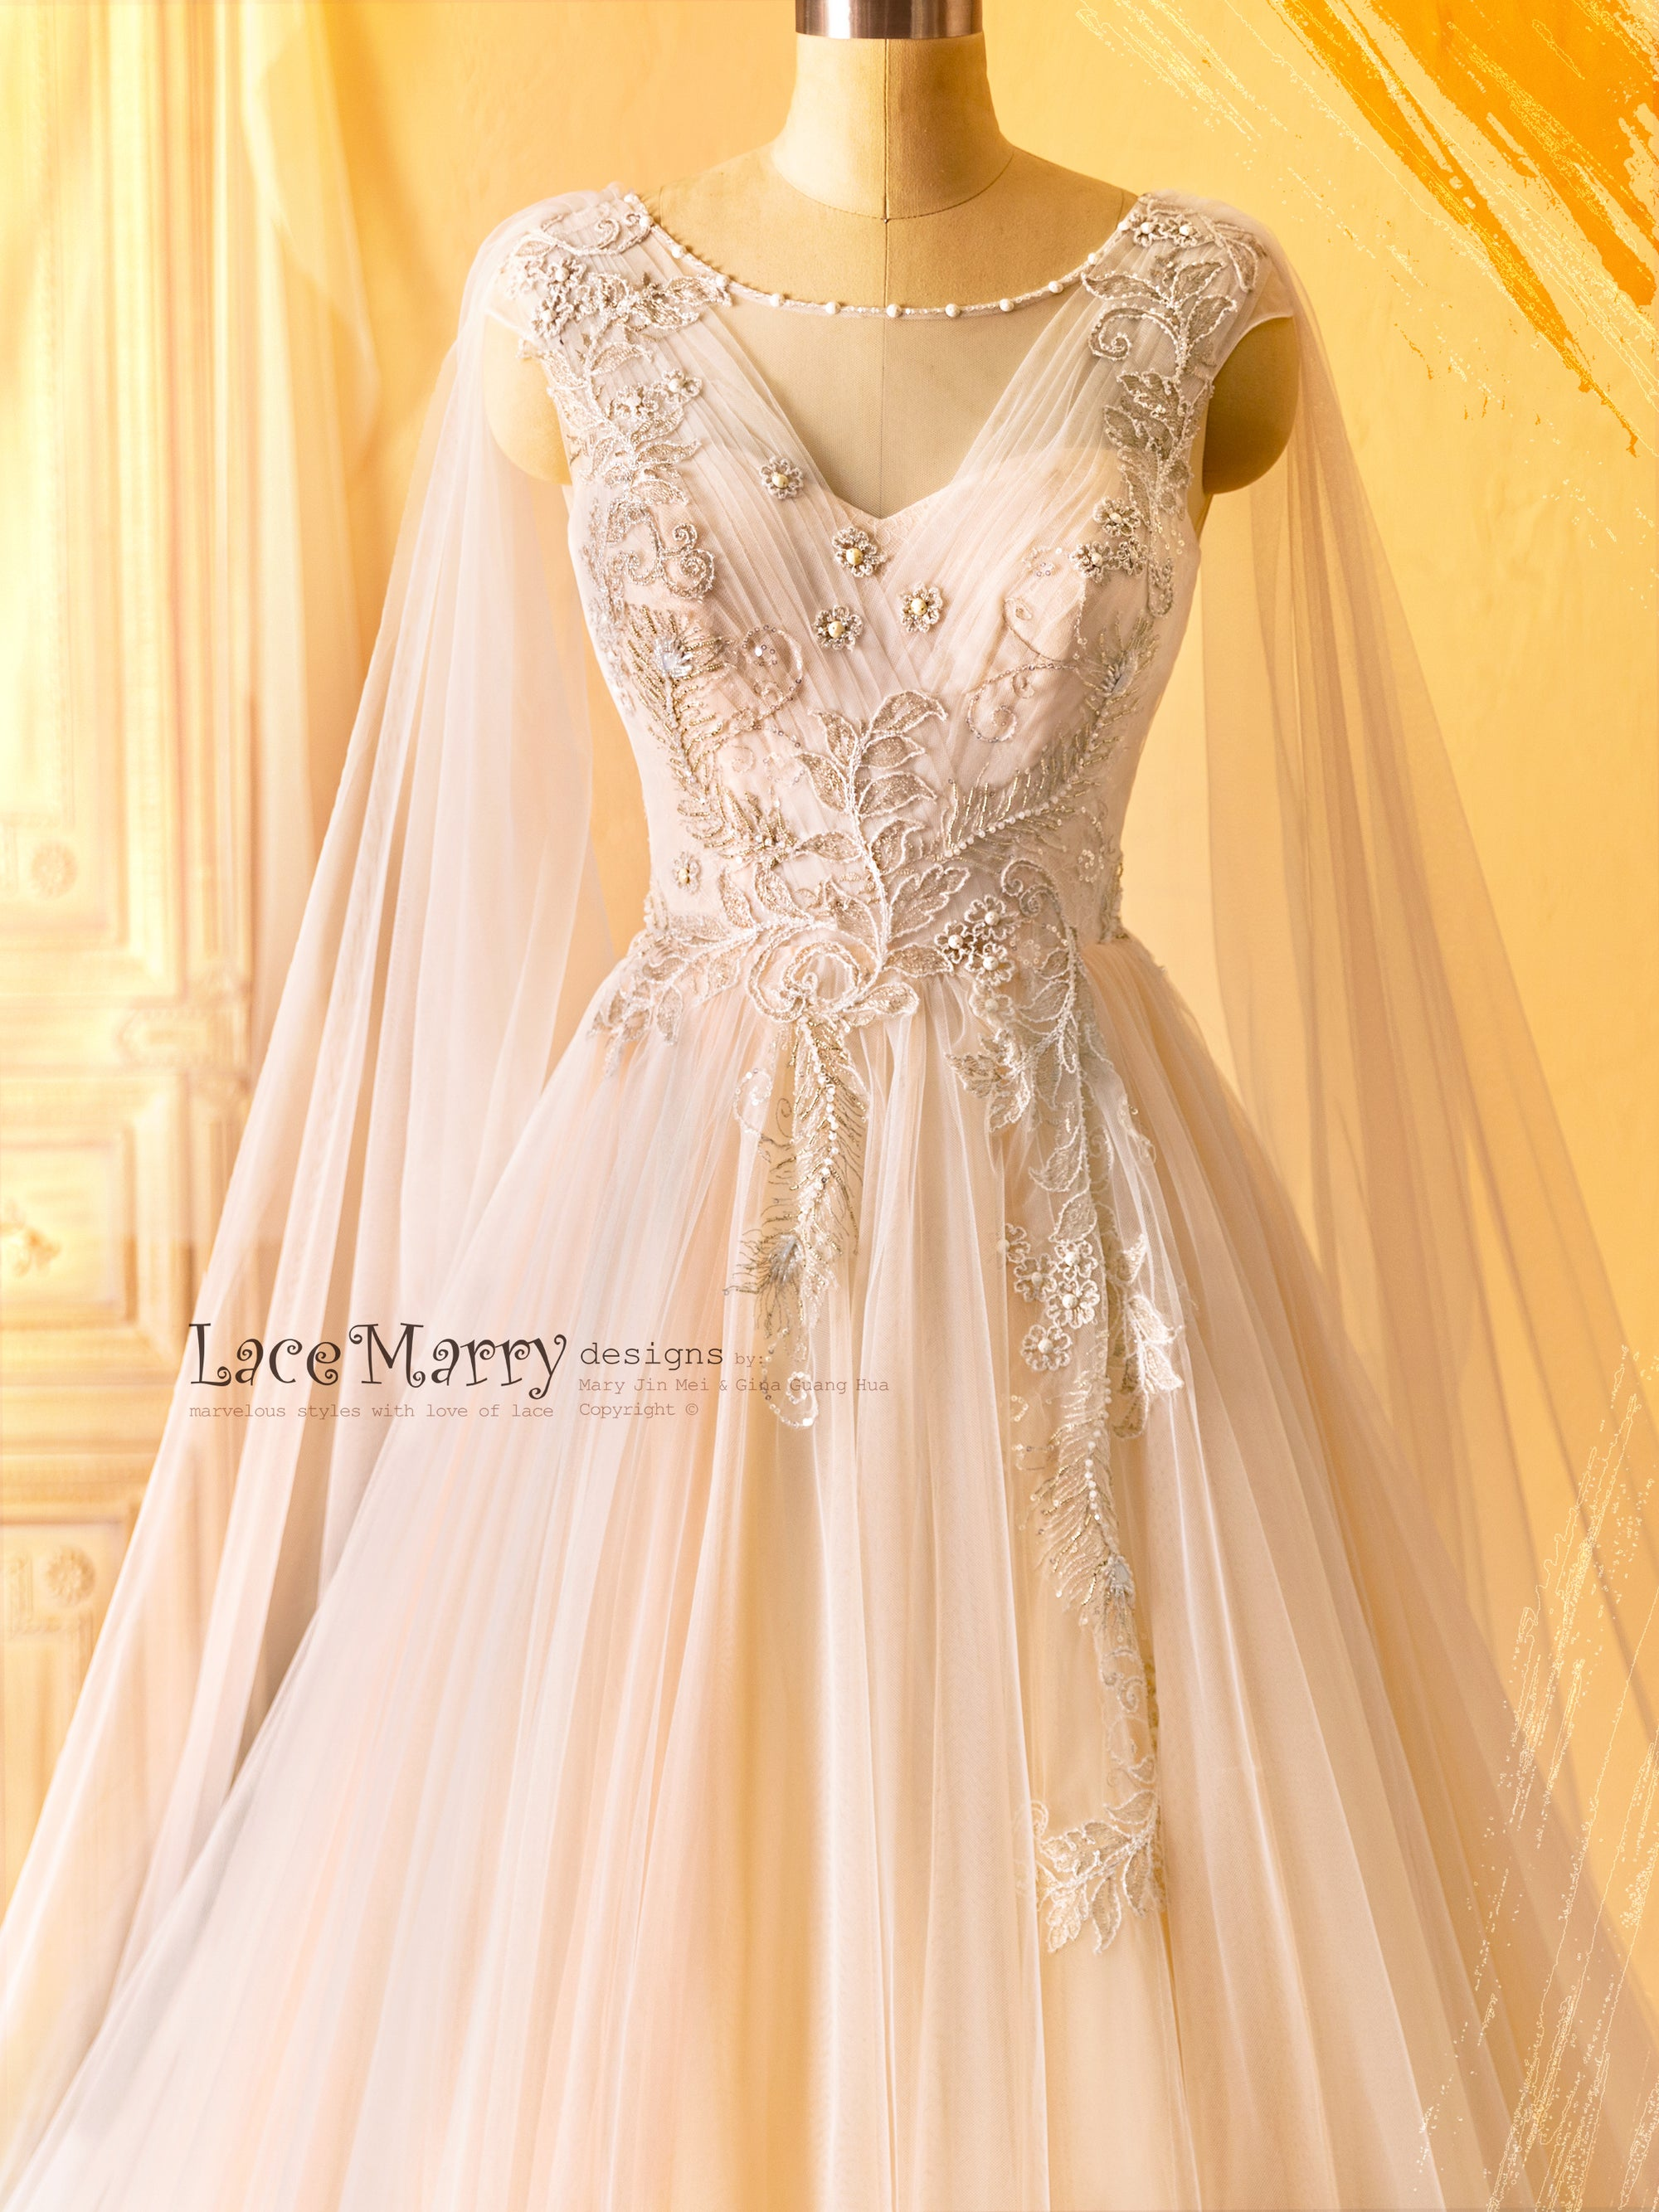 Fairytale Wedding Dress with Tulle Cape Sleeves